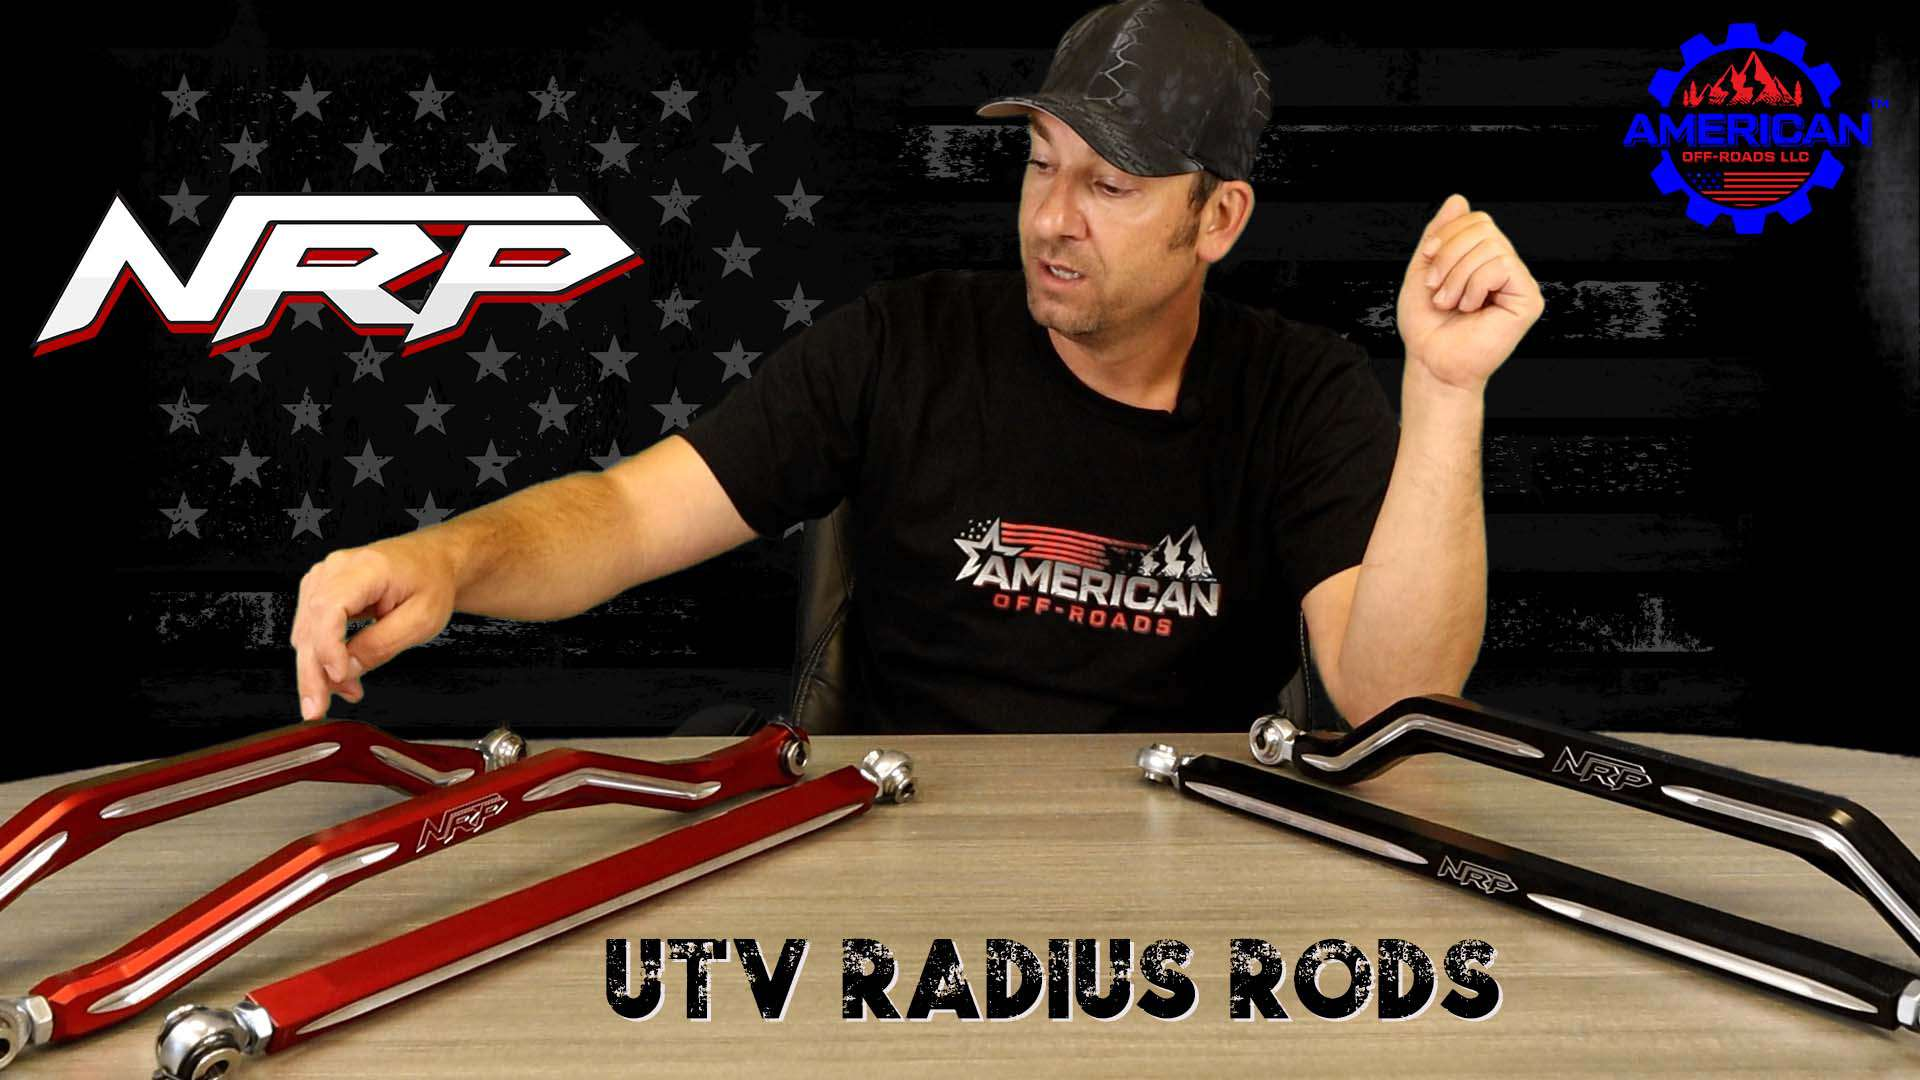 American Off-Roads Talk UTV Radius Rods and What You Should Know